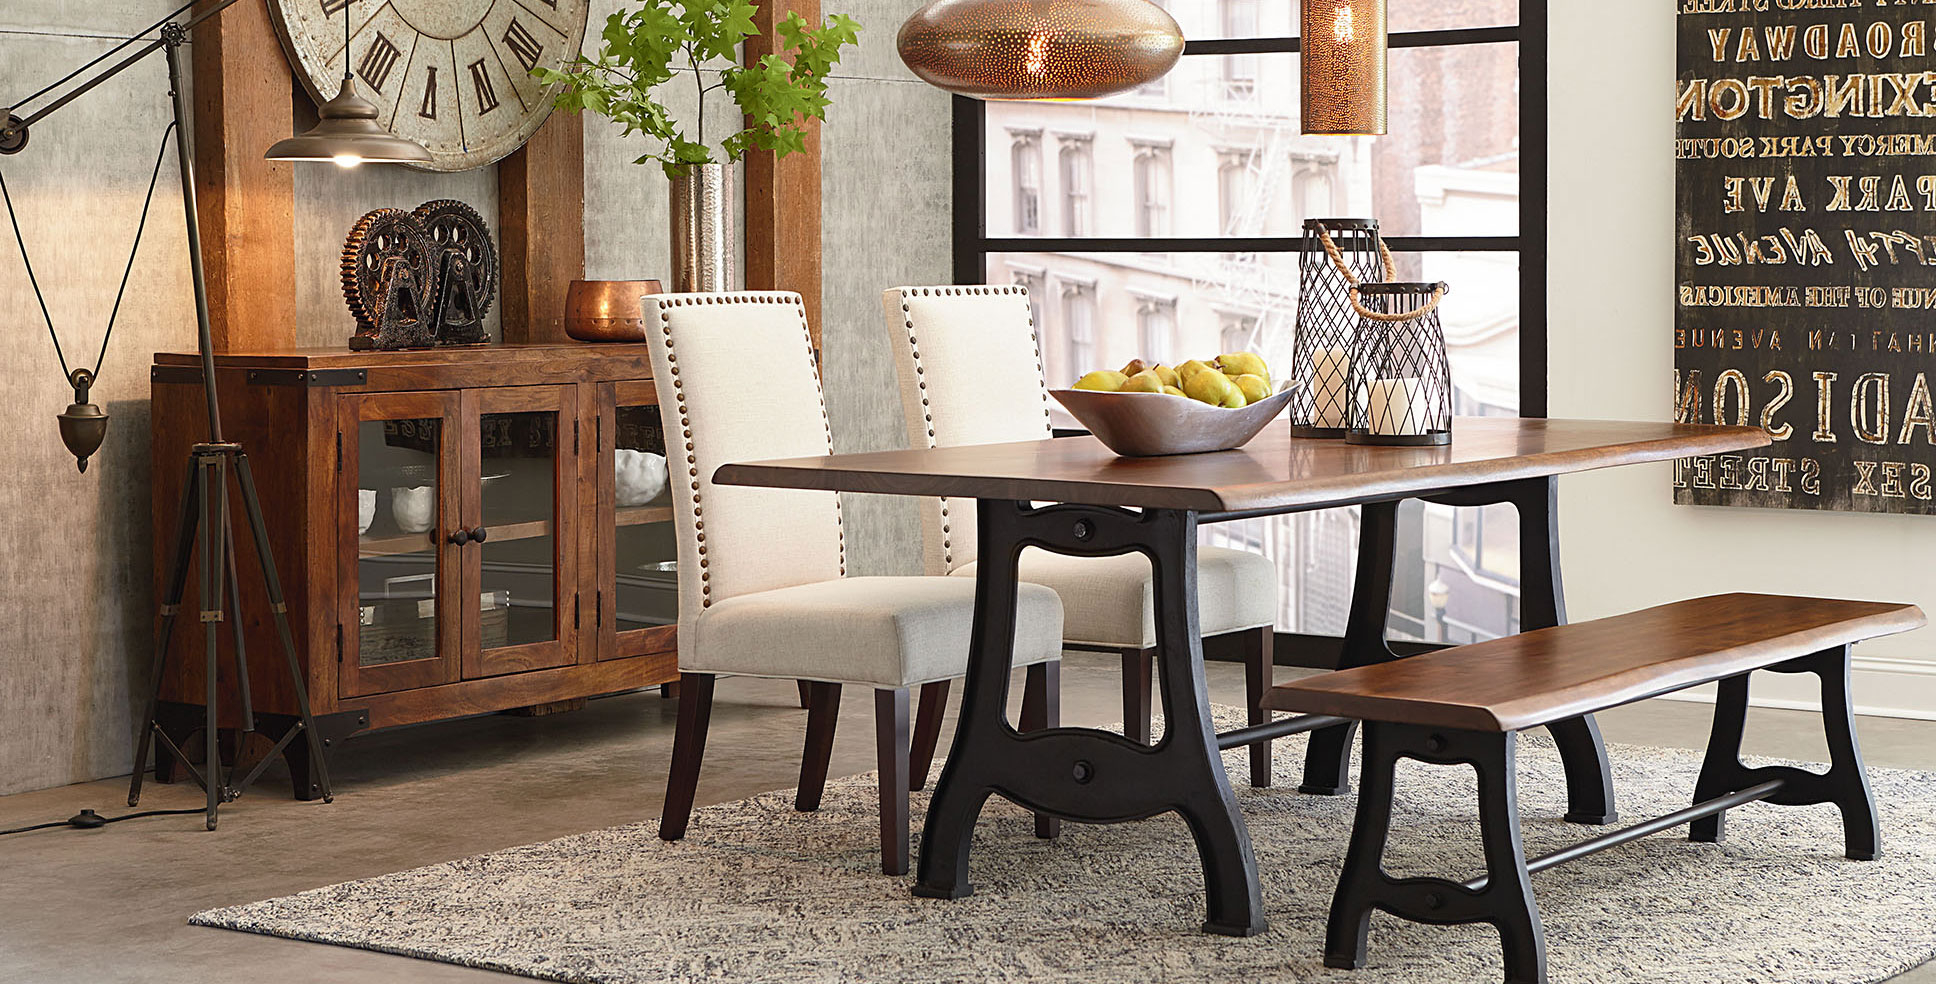 Rustic, Farmhouse, Vintage,mid-Century Modern, & Industrial throughout Most Recent Rustic Mid-Century Modern 6-Seating Dining Tables In White And Natural Wood